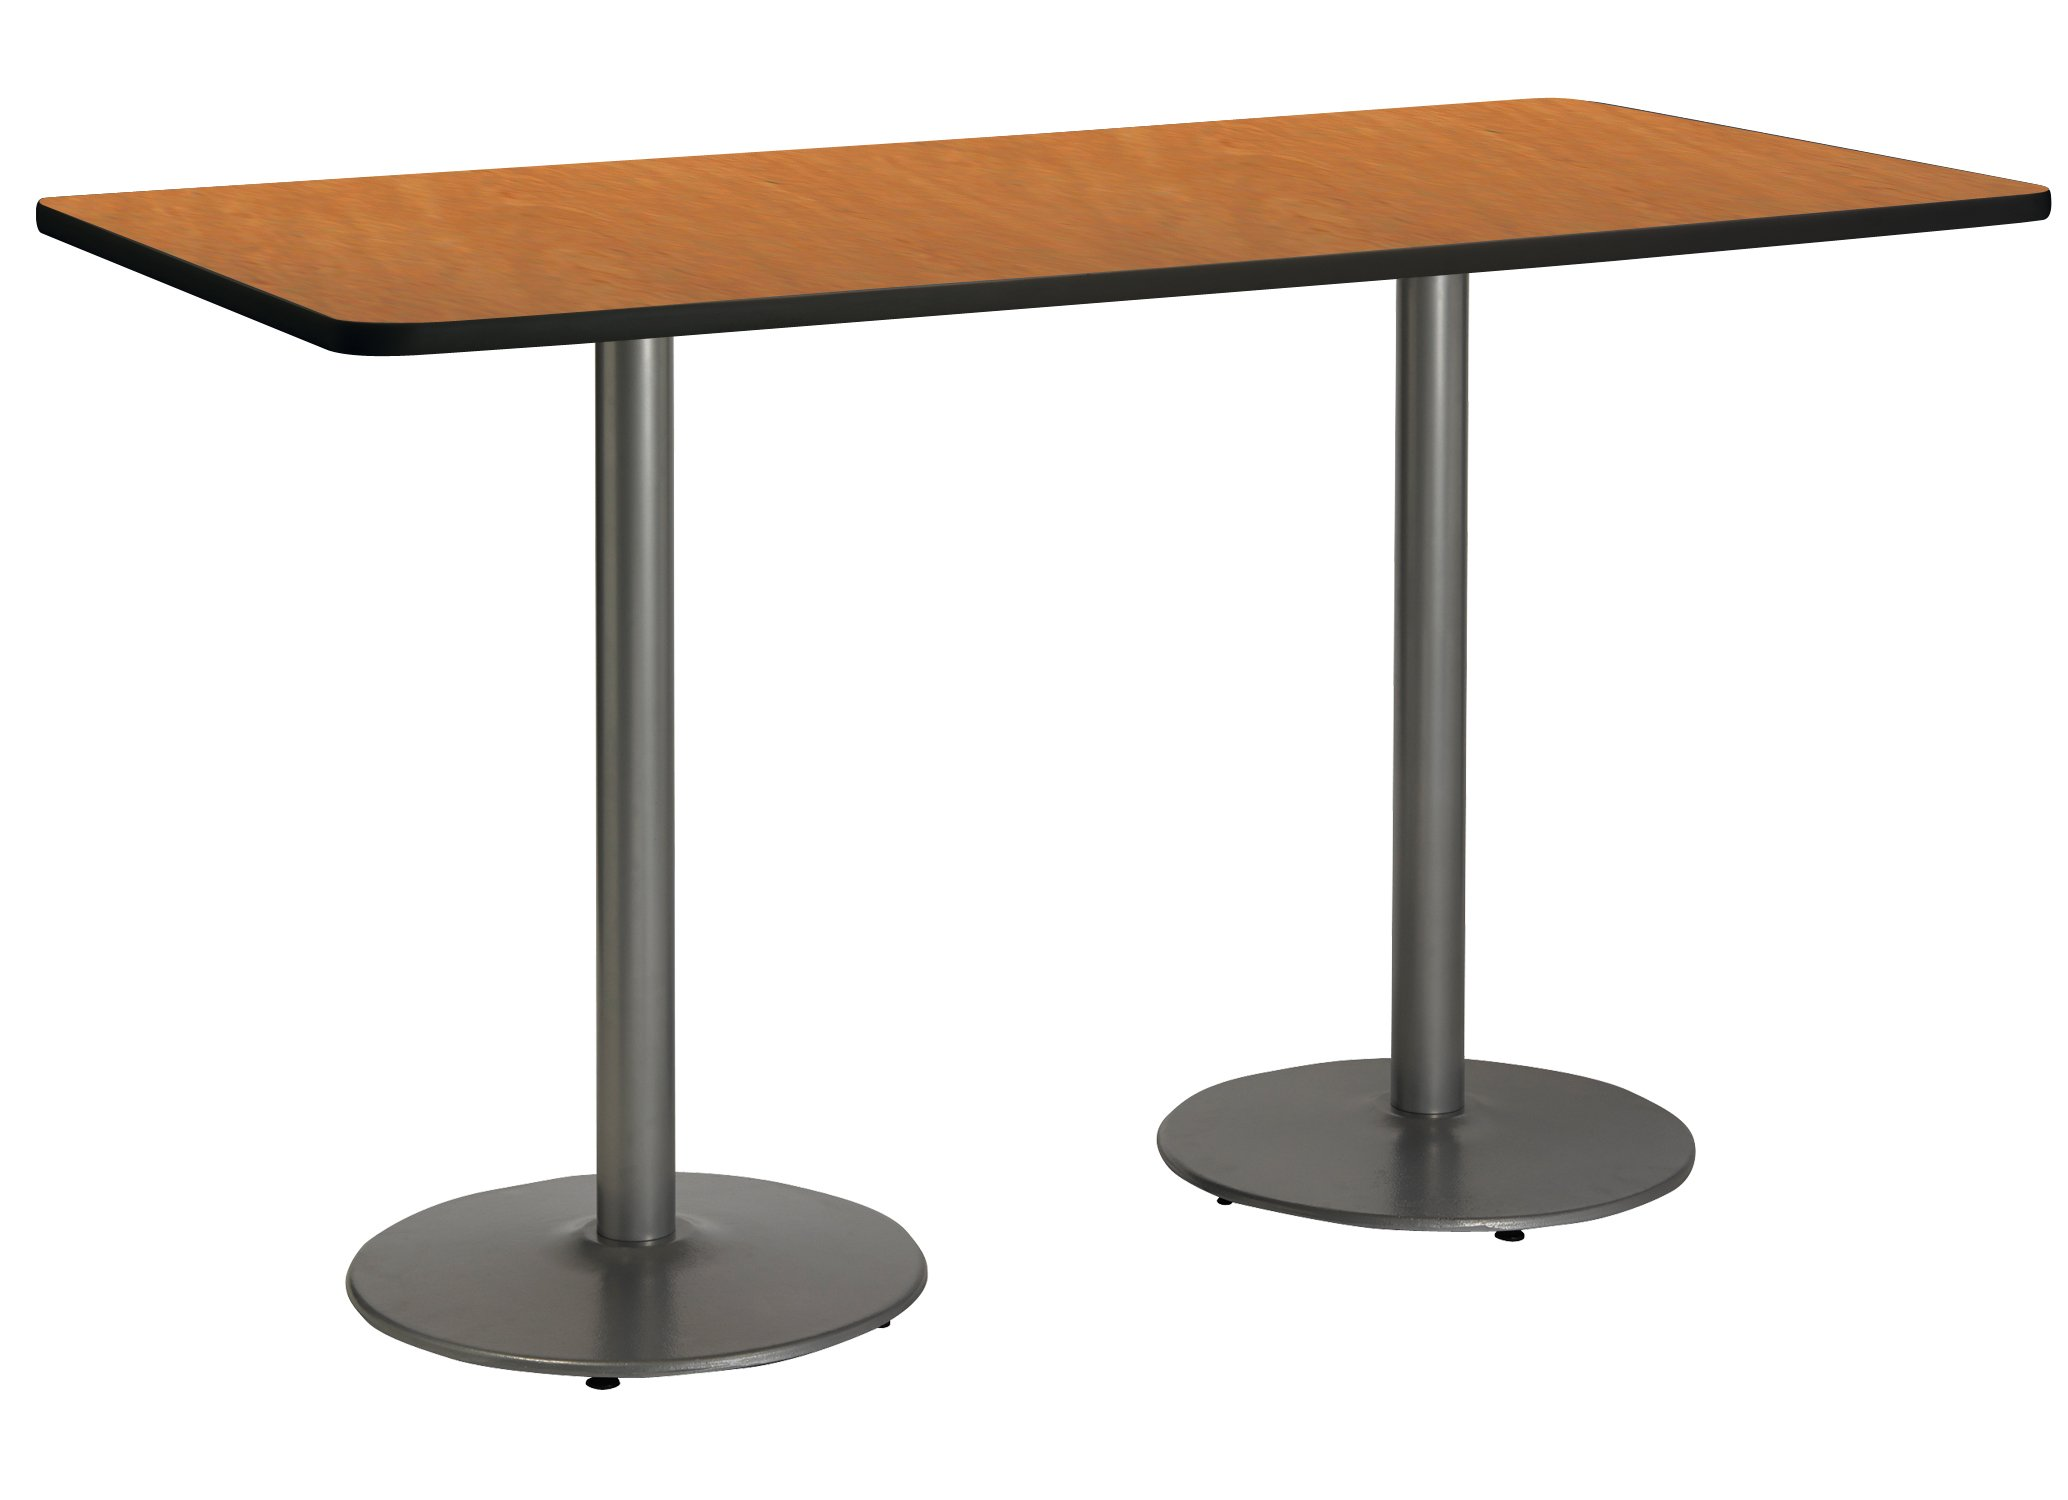 36'' x 72'' Pedestal Table with Medium Oak Top, Round Silver Base, Bistro Height by KFI Seating